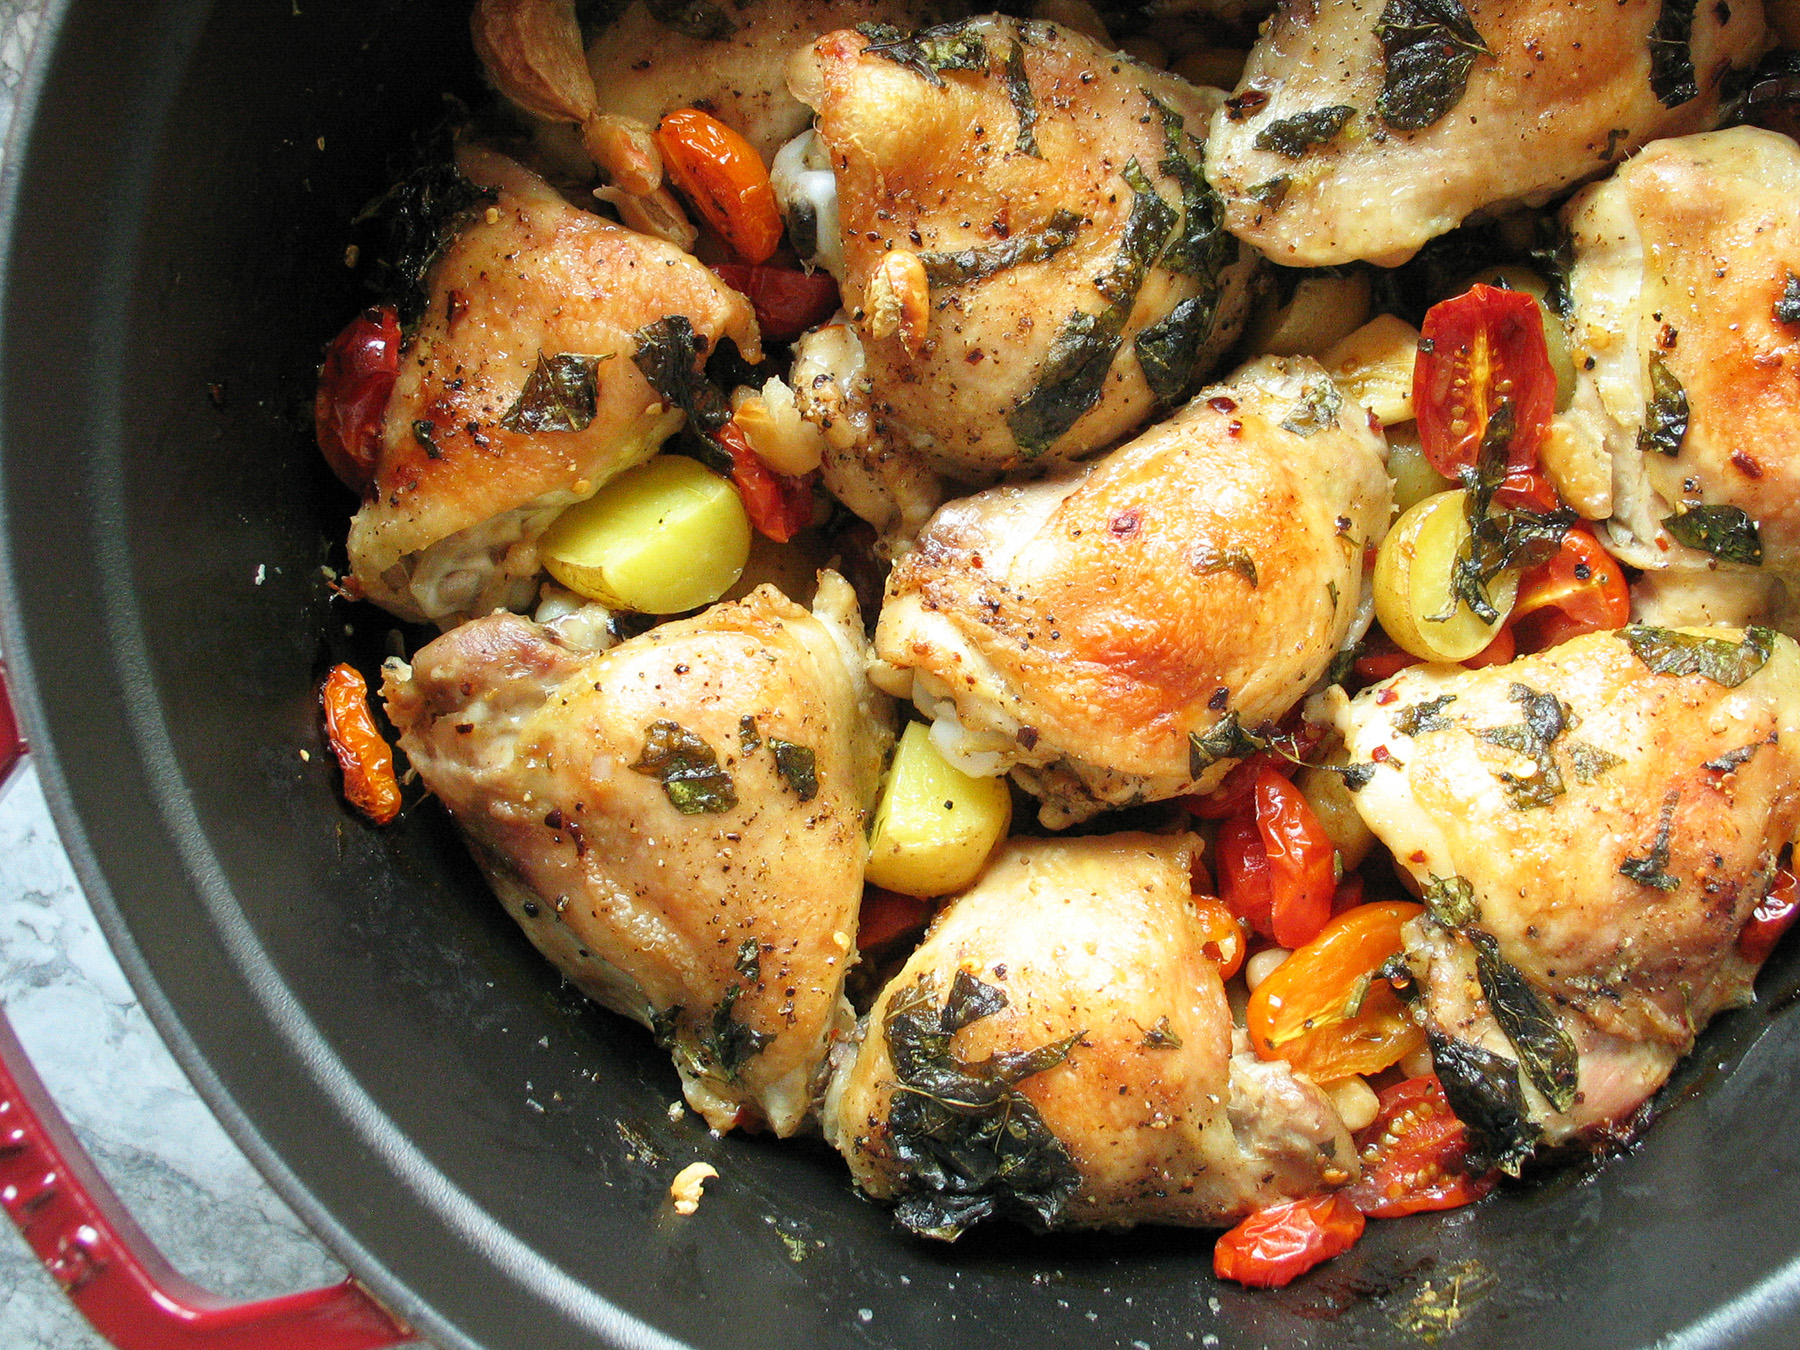 Jamie Oliver's Chicken with Tomatoes & Basil